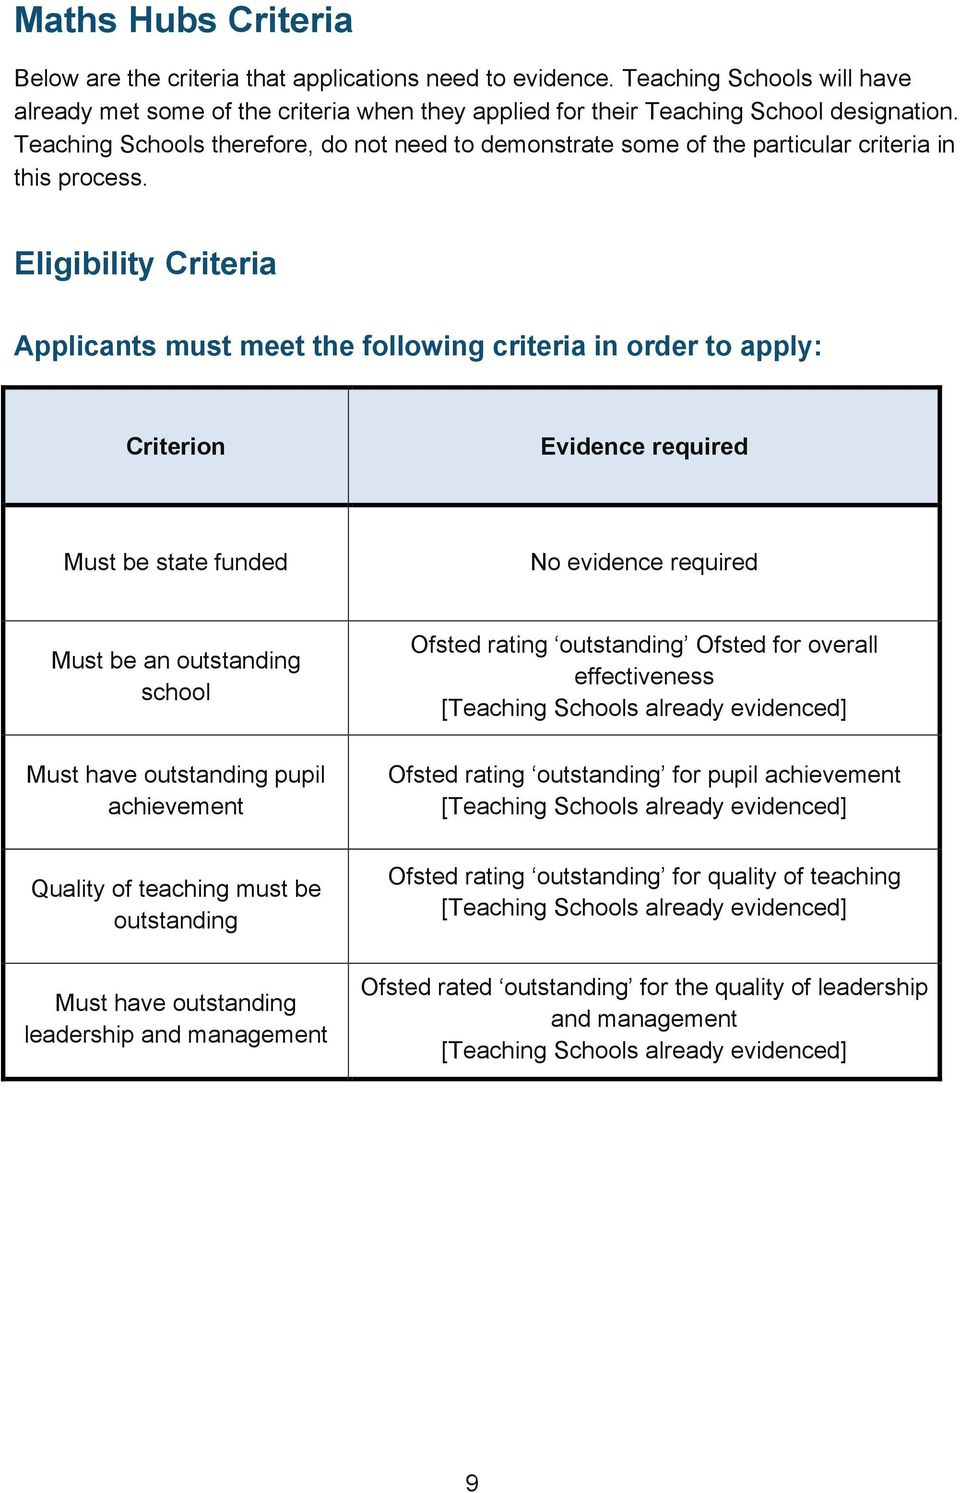 Eligibility Criteria Applicants must meet the following criteria in order to apply: Criterion Evidence required Must be state funded No evidence required Must be an outstanding school Must have